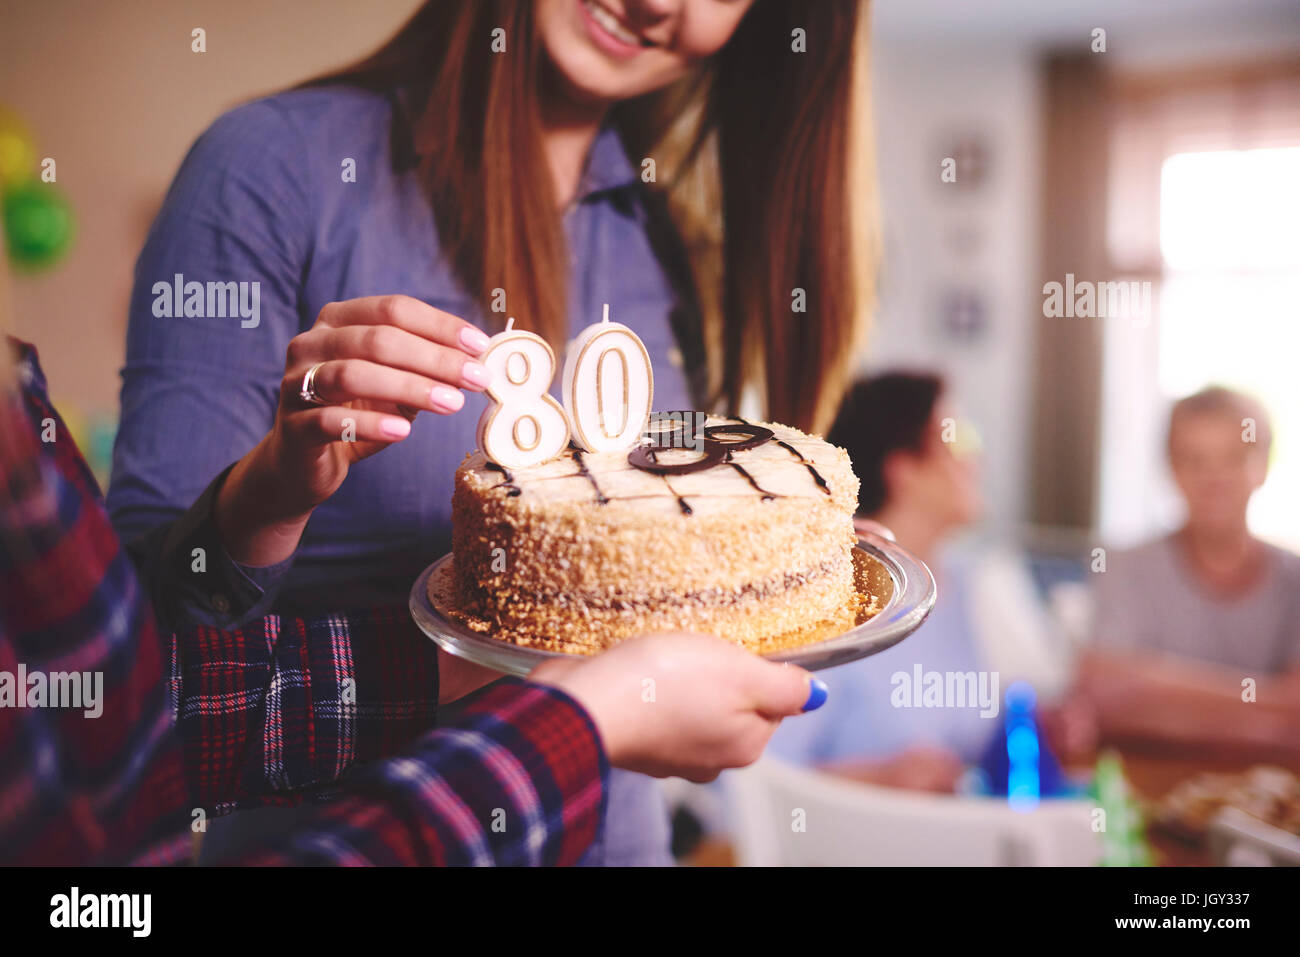 Daughter preparing birthday cake for mother at birthday party - Stock Image